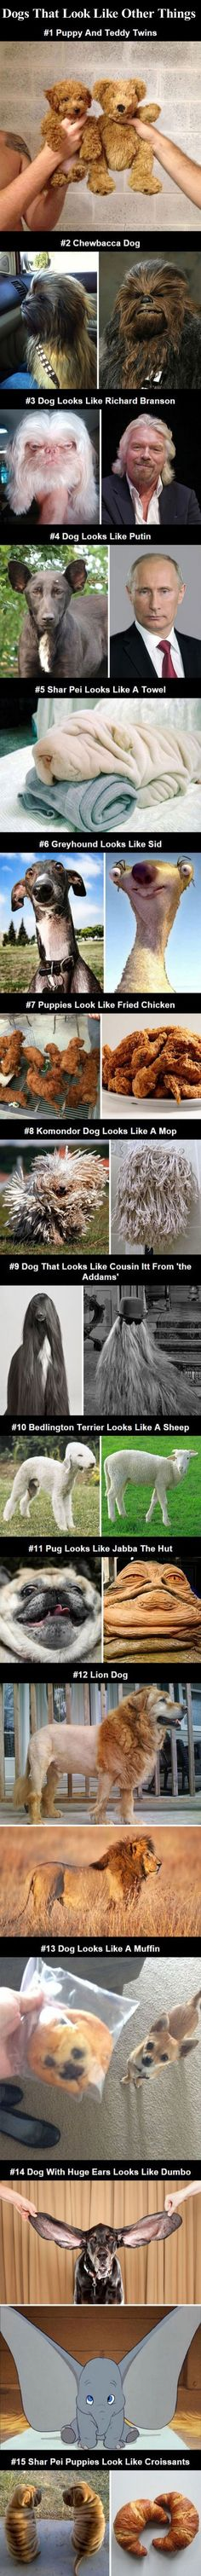 Dogs That Look Like Other Things cute animals dogs adorable dog puppy animal pets lol puppies humor funny pictures funny animals funny pets funny dogs